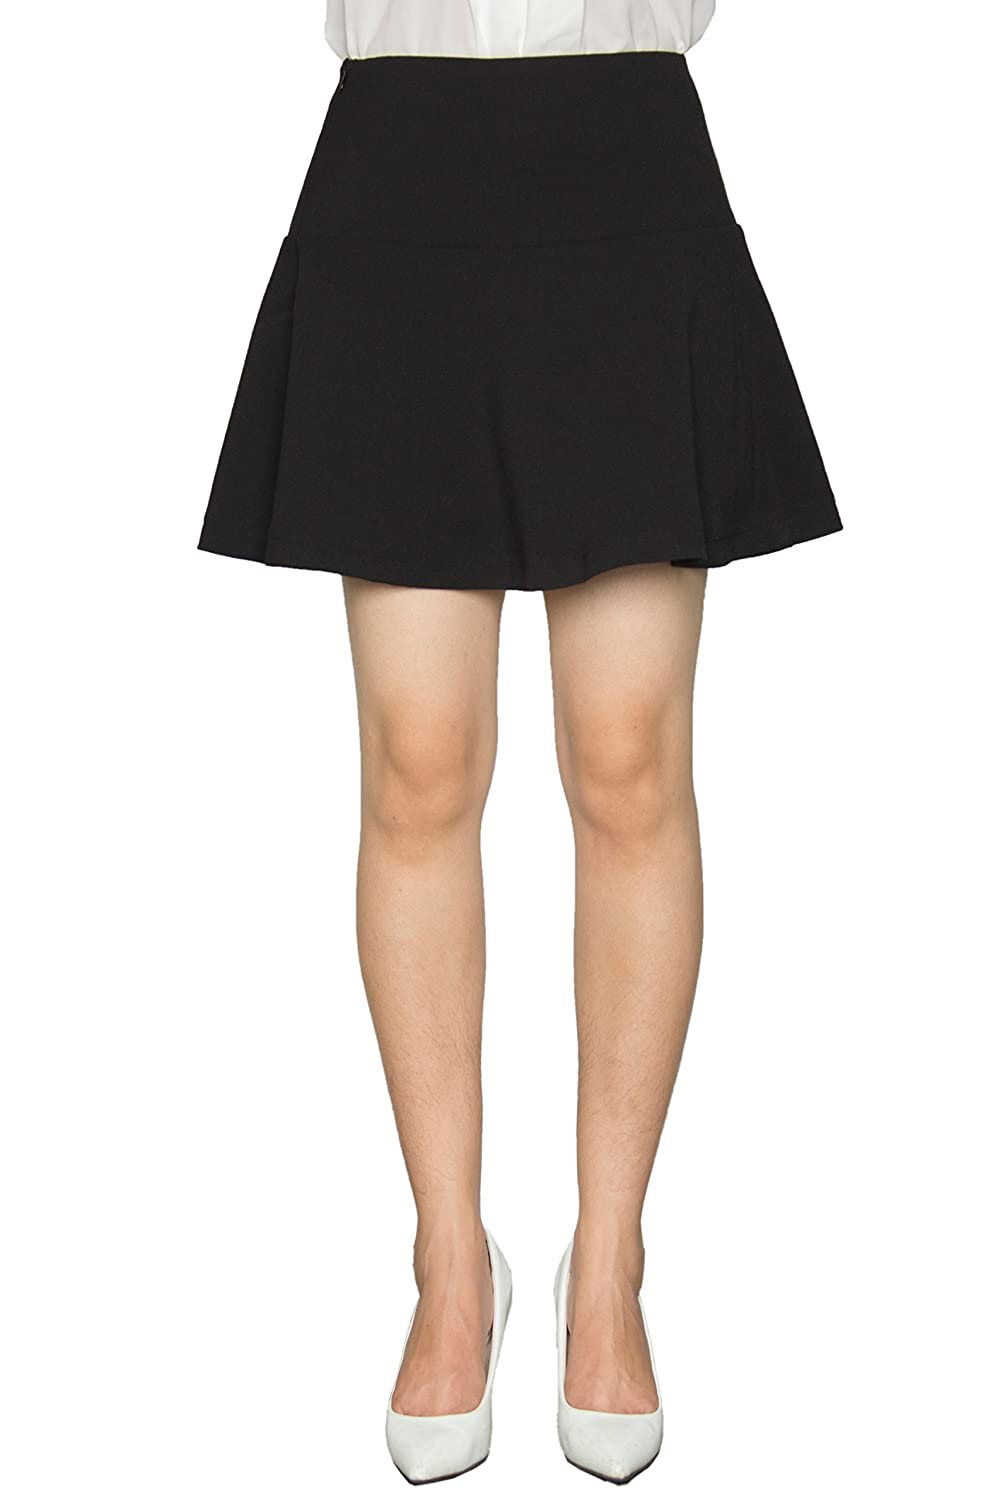 Women Basic Versatile Solid Color A-line Skirt Black